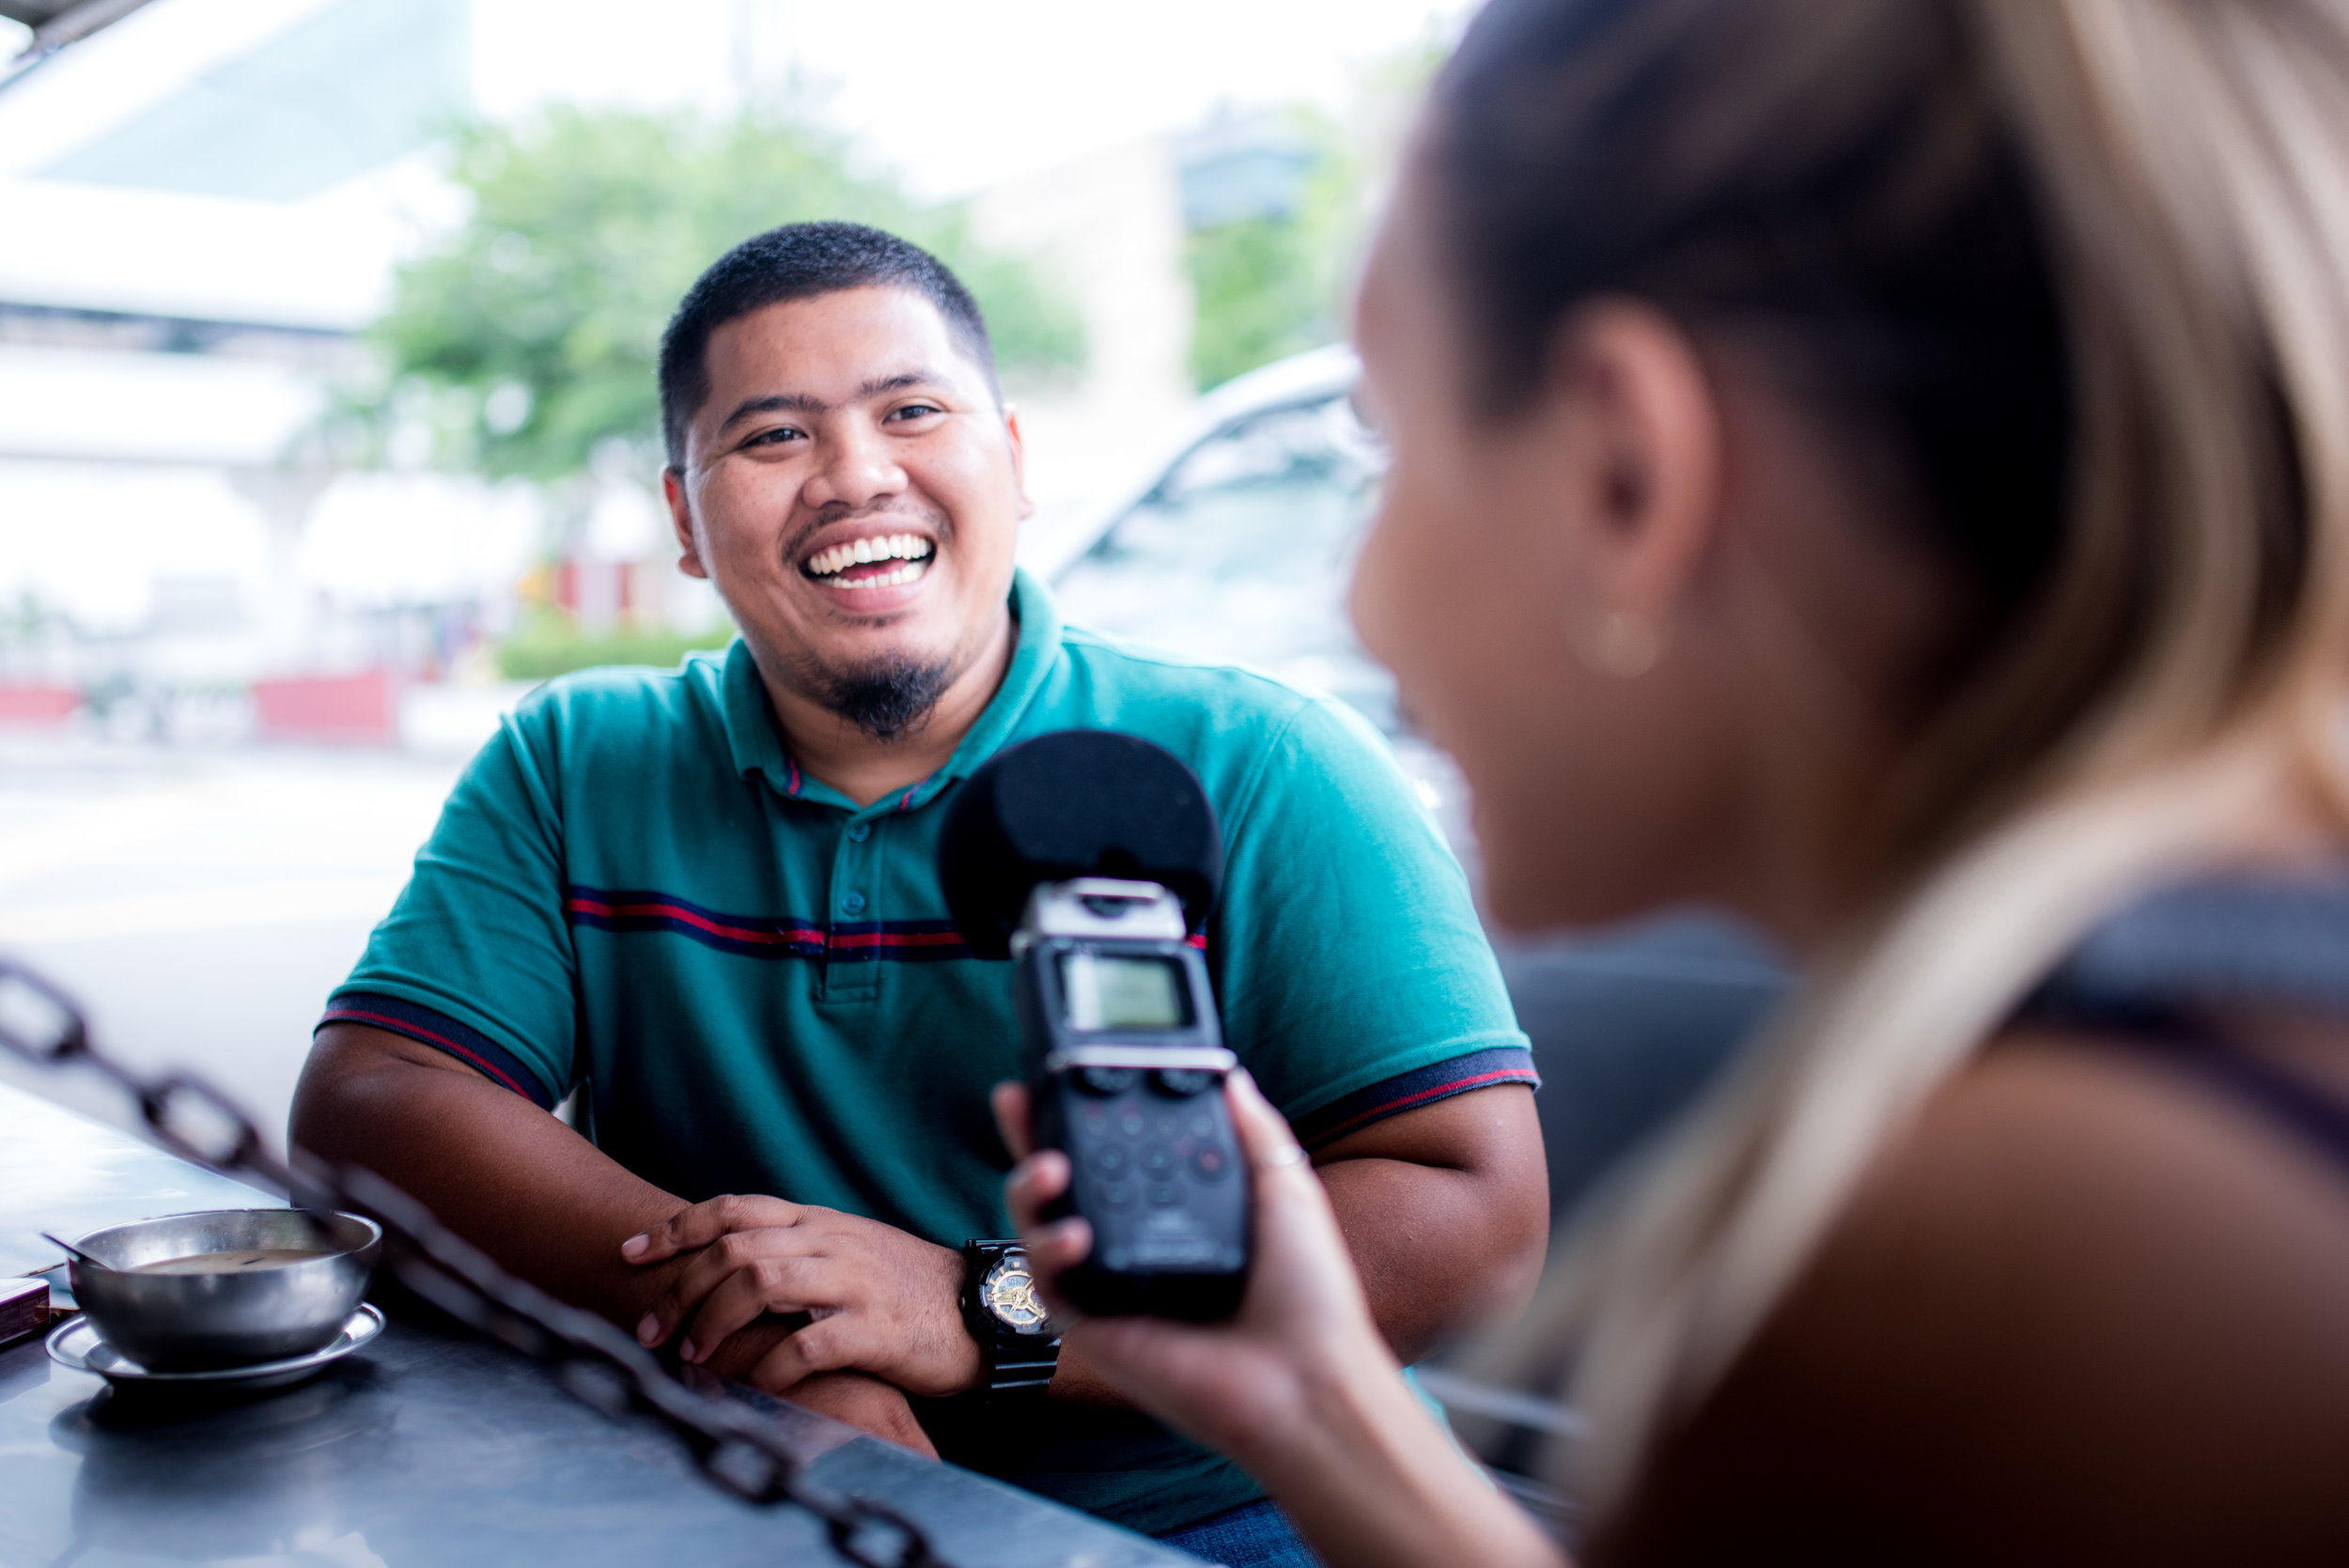 Sime Darby - People of Subang - BTS - PPS_8987 - Photo by All Is Amazing.jpg